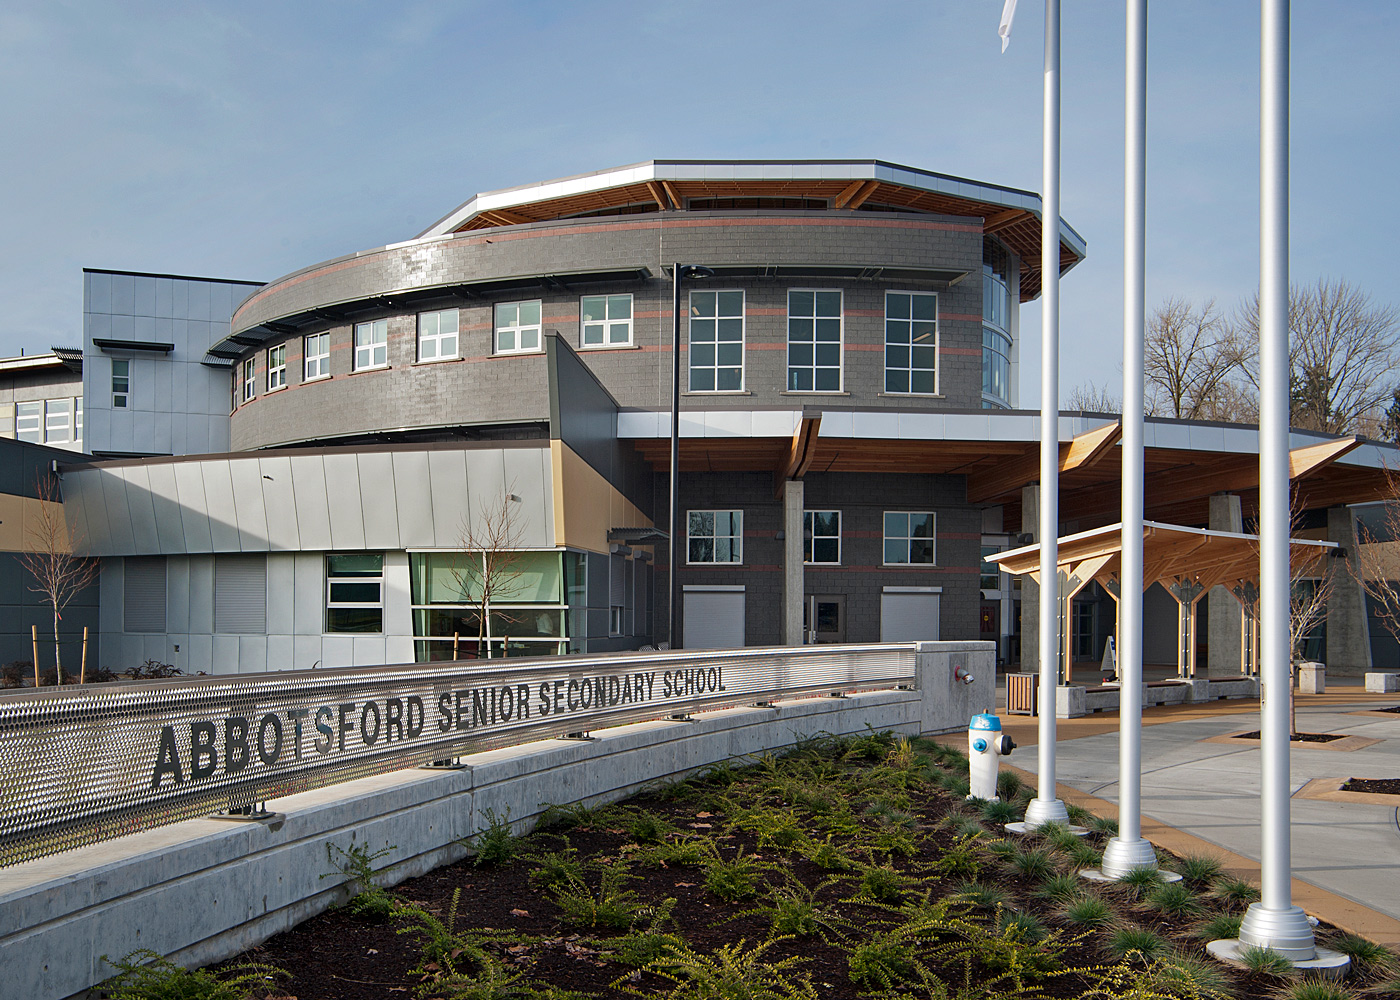 Abbotsford Senior Secondary